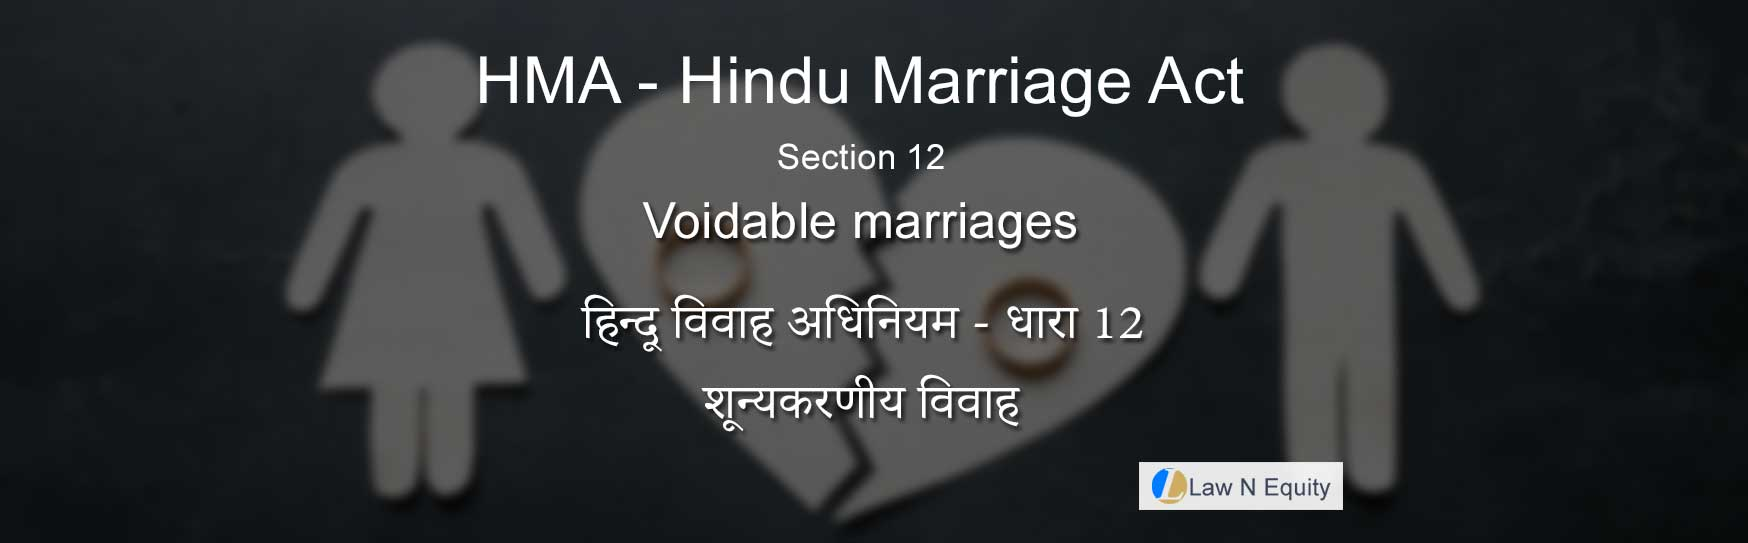 Hindu Marriage Act(HMA) Section 12